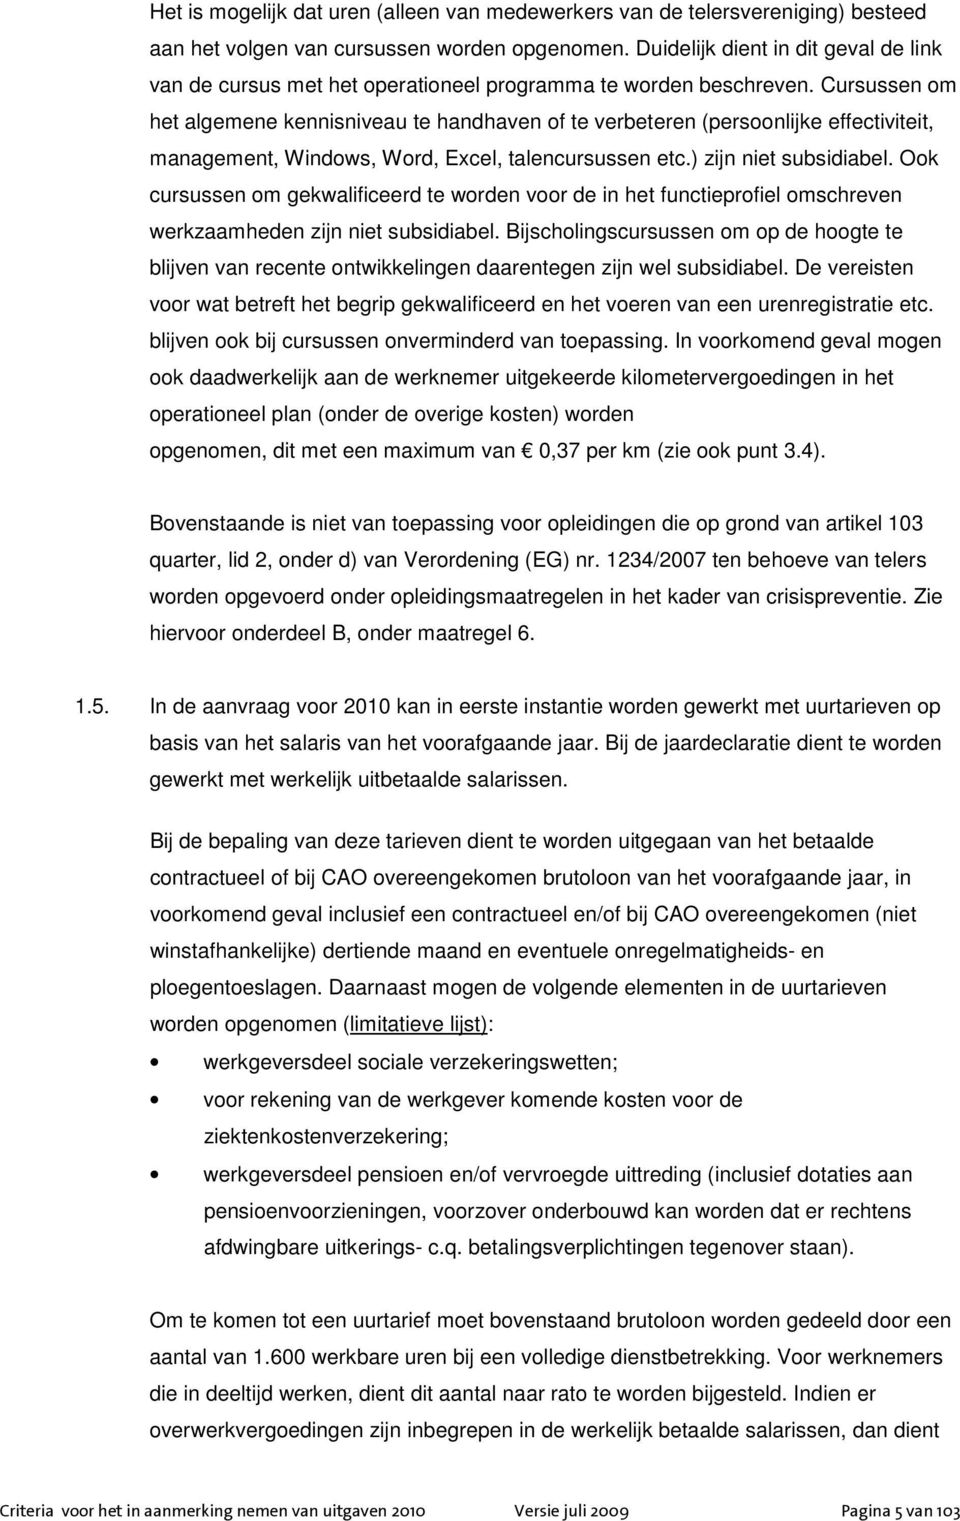 Cursussen om het algemene kennisniveau te handhaven of te verbeteren (persoonlijke effectiviteit, management, Windows, Word, Excel, talencursussen etc.) zijn niet subsidiabel.